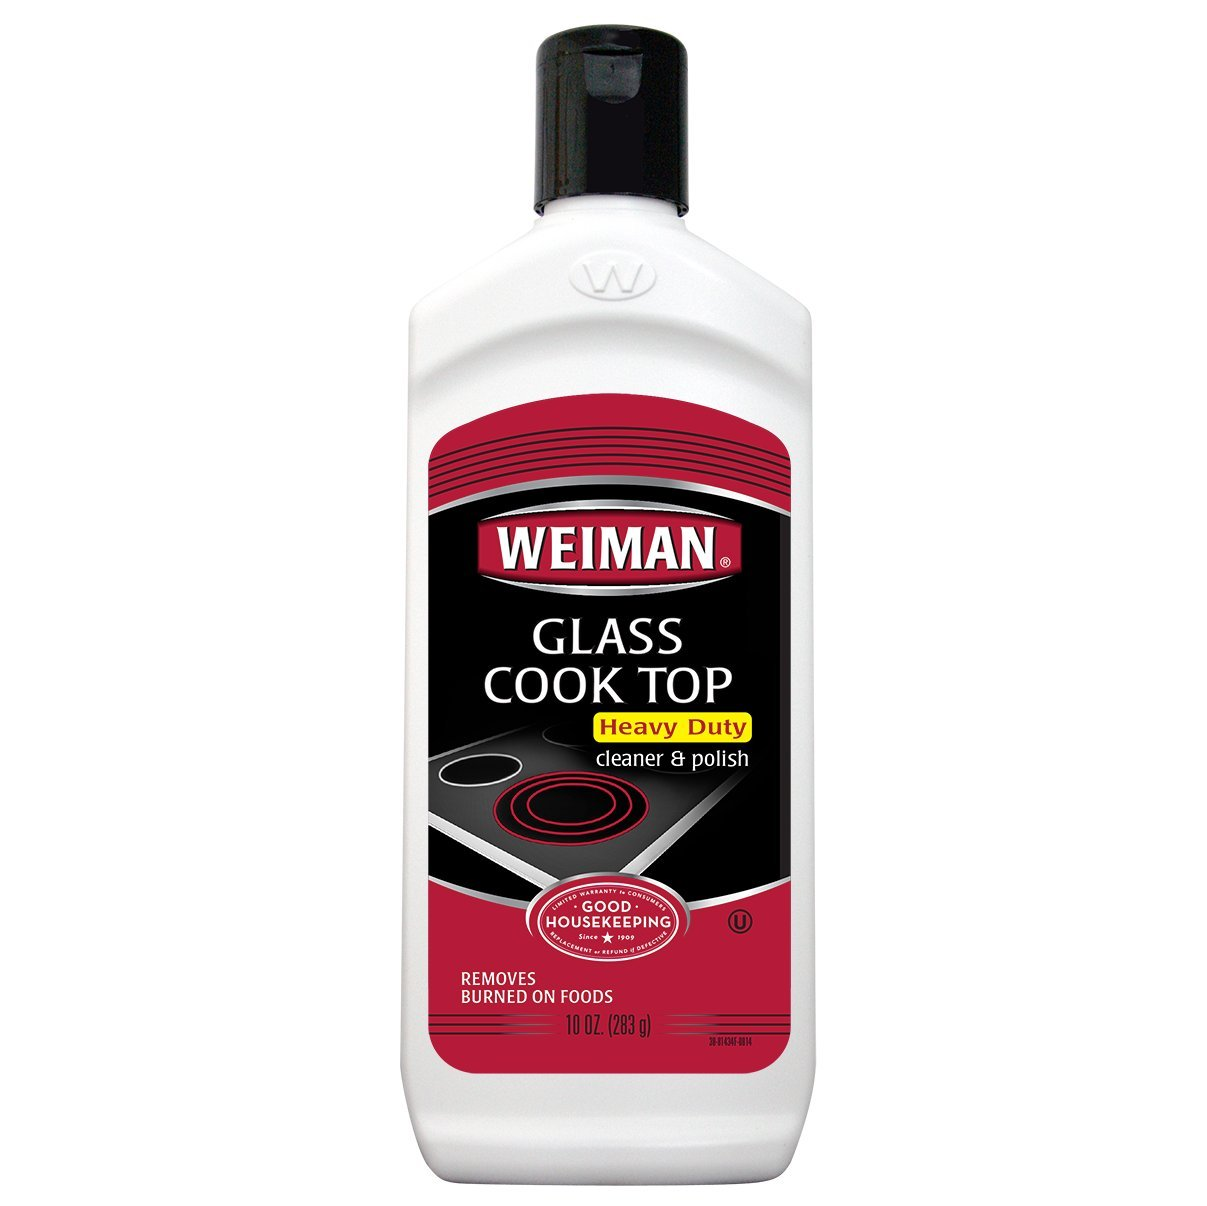 Weiman Glass Cook Top Cleaner 10 fl oz - 6 pack